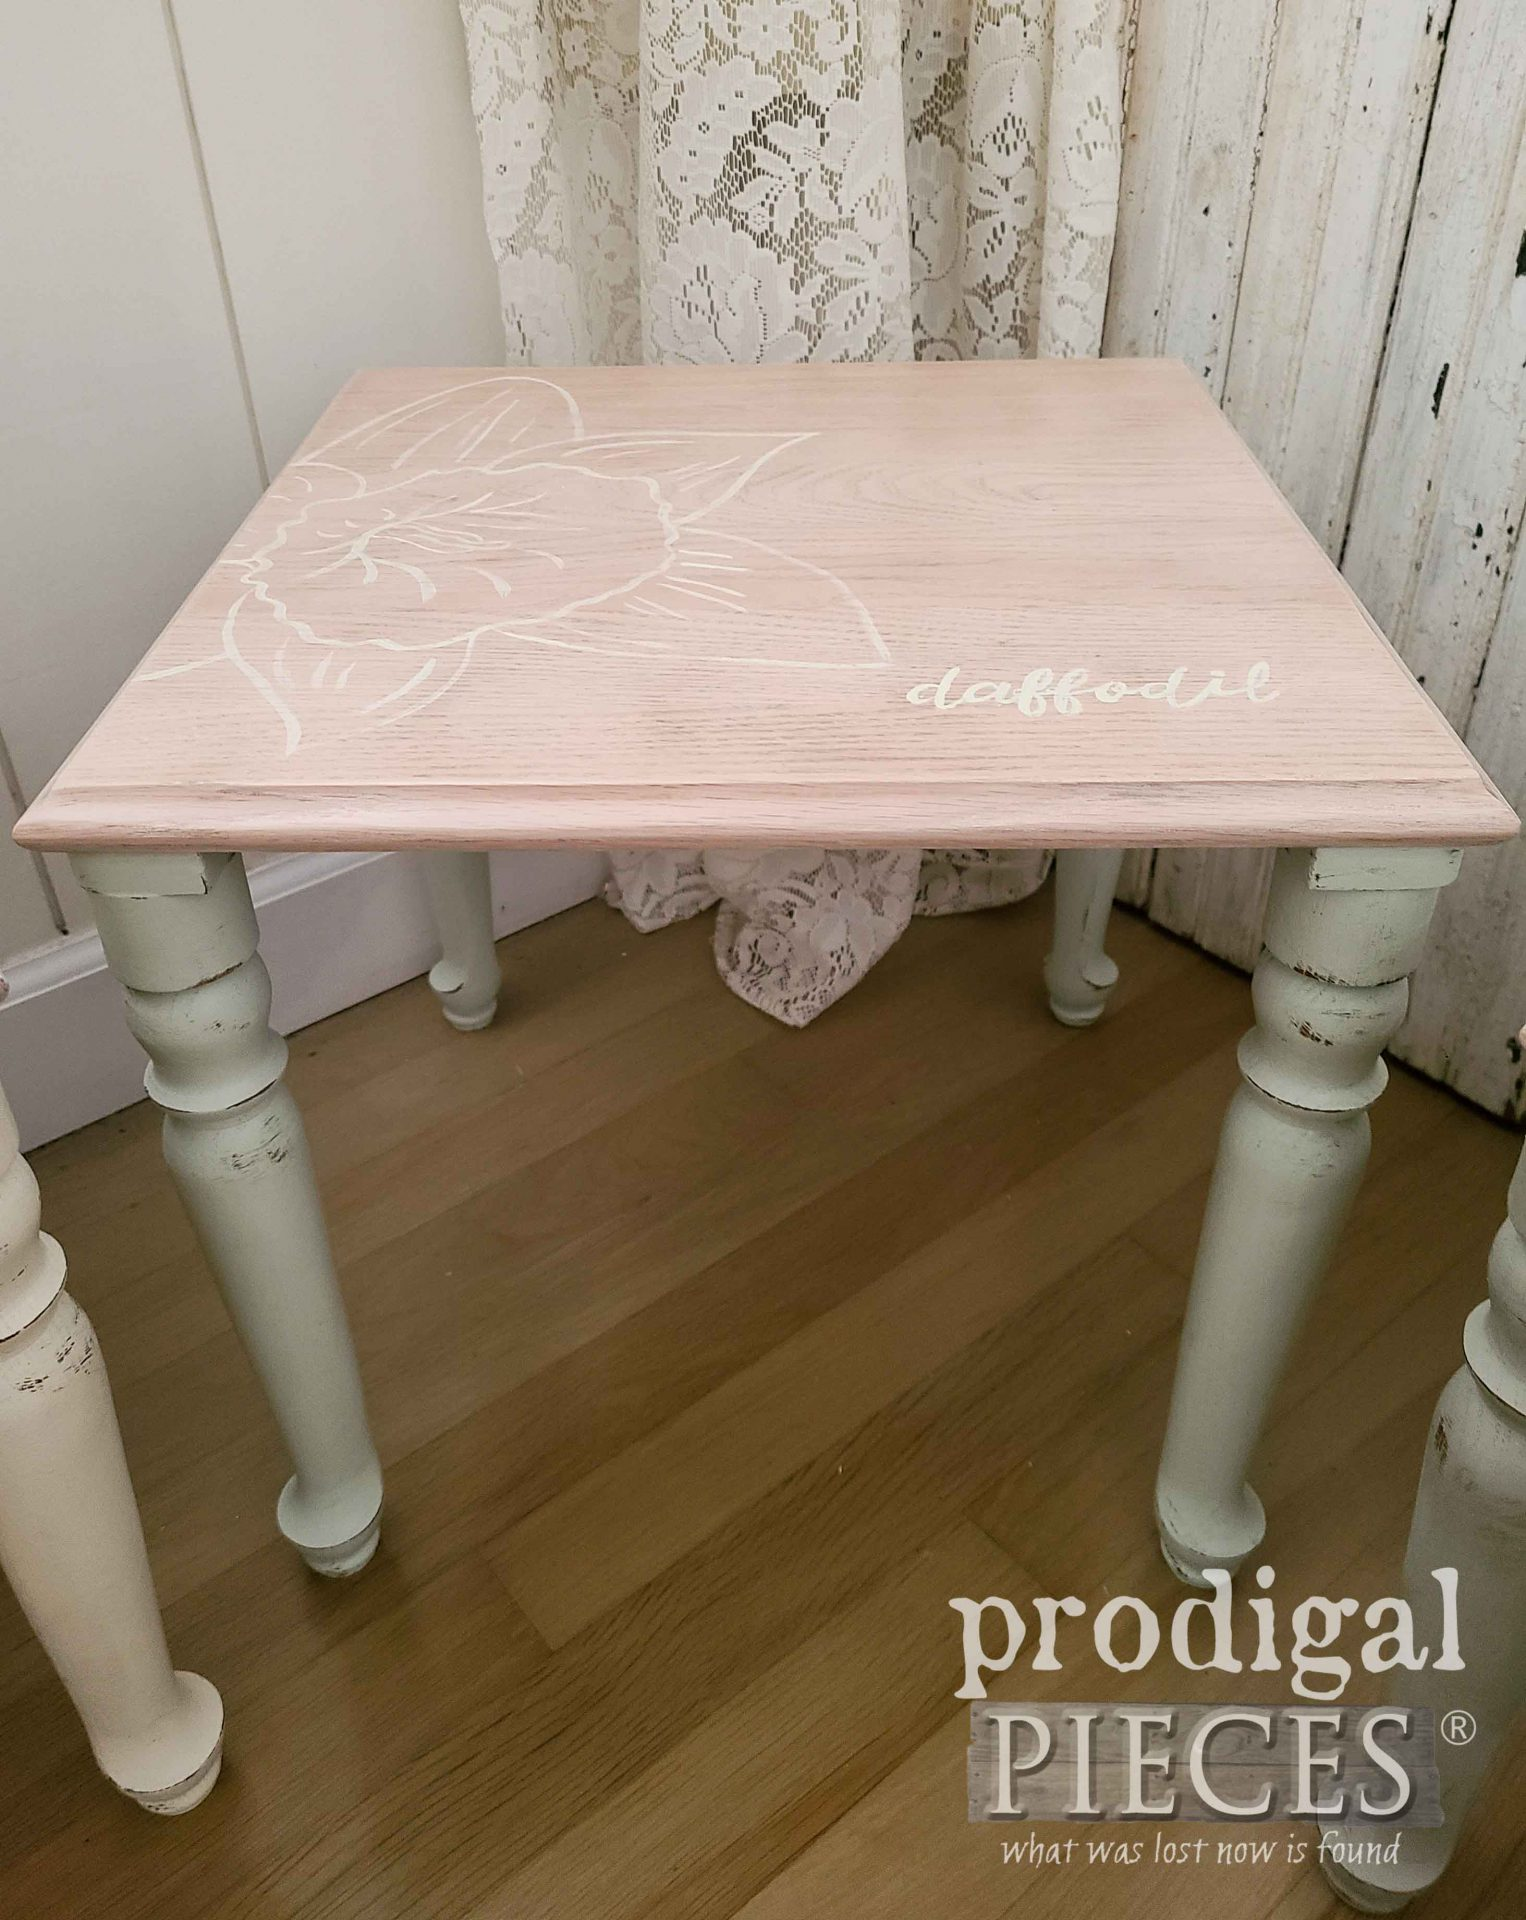 Soft Green Daffodil Stacking Table | prodigalpieces.com #prodigalpieces #furniture #handmade #home